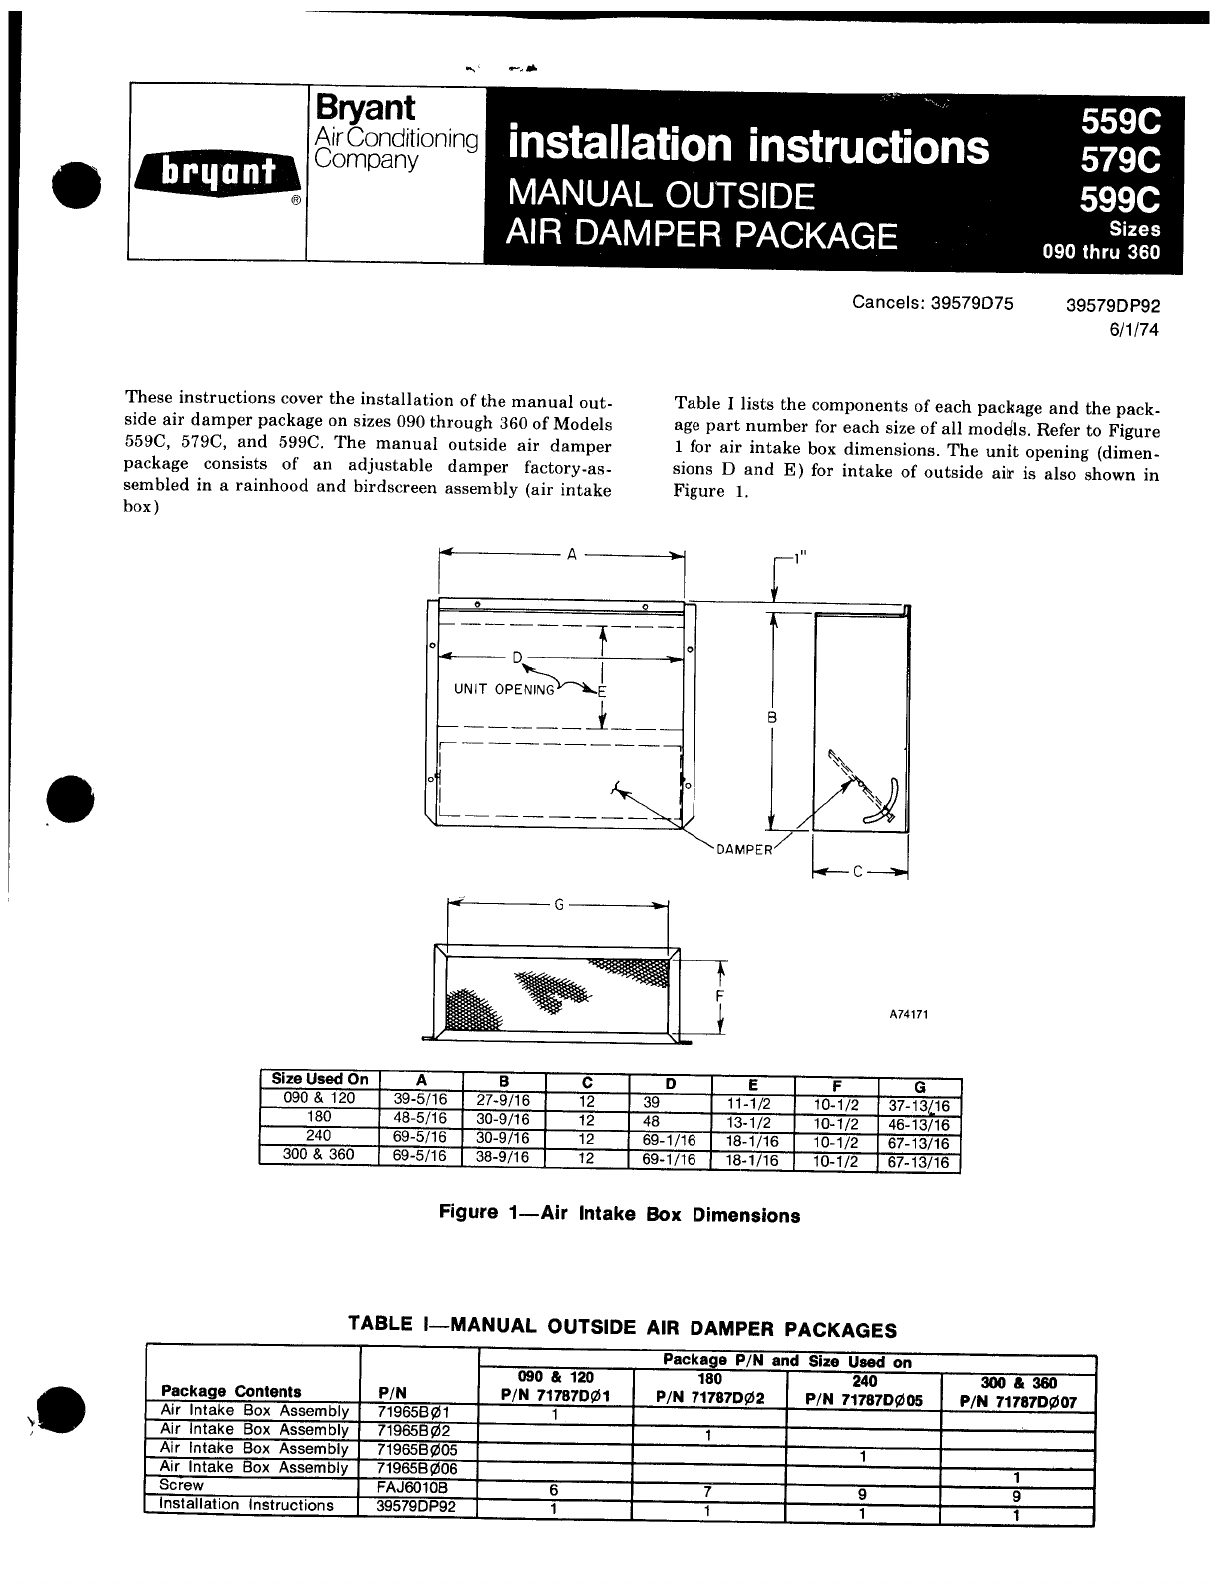 bryant air conditioner 599c user guide manualsonline com rh manualsonline com bryant air conditioner brochure bryant air conditioner brochure